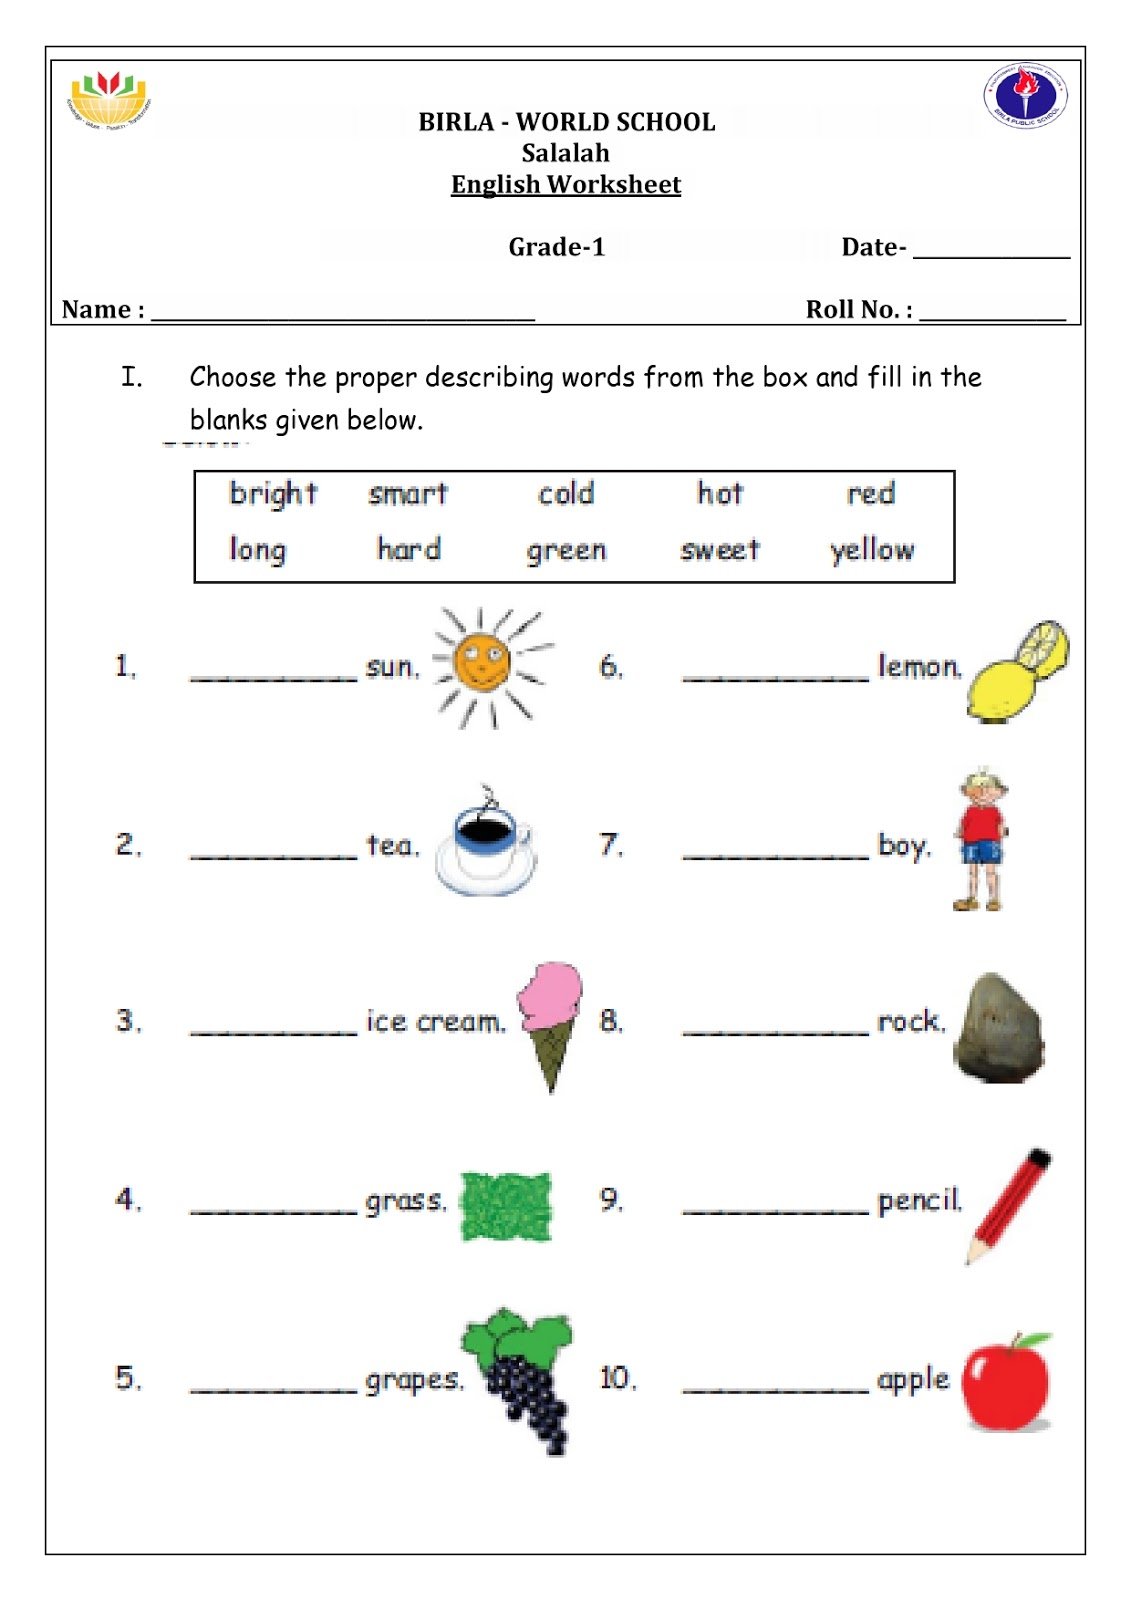 Birla World School Oman Homework For Grade 1b On 21 1 16